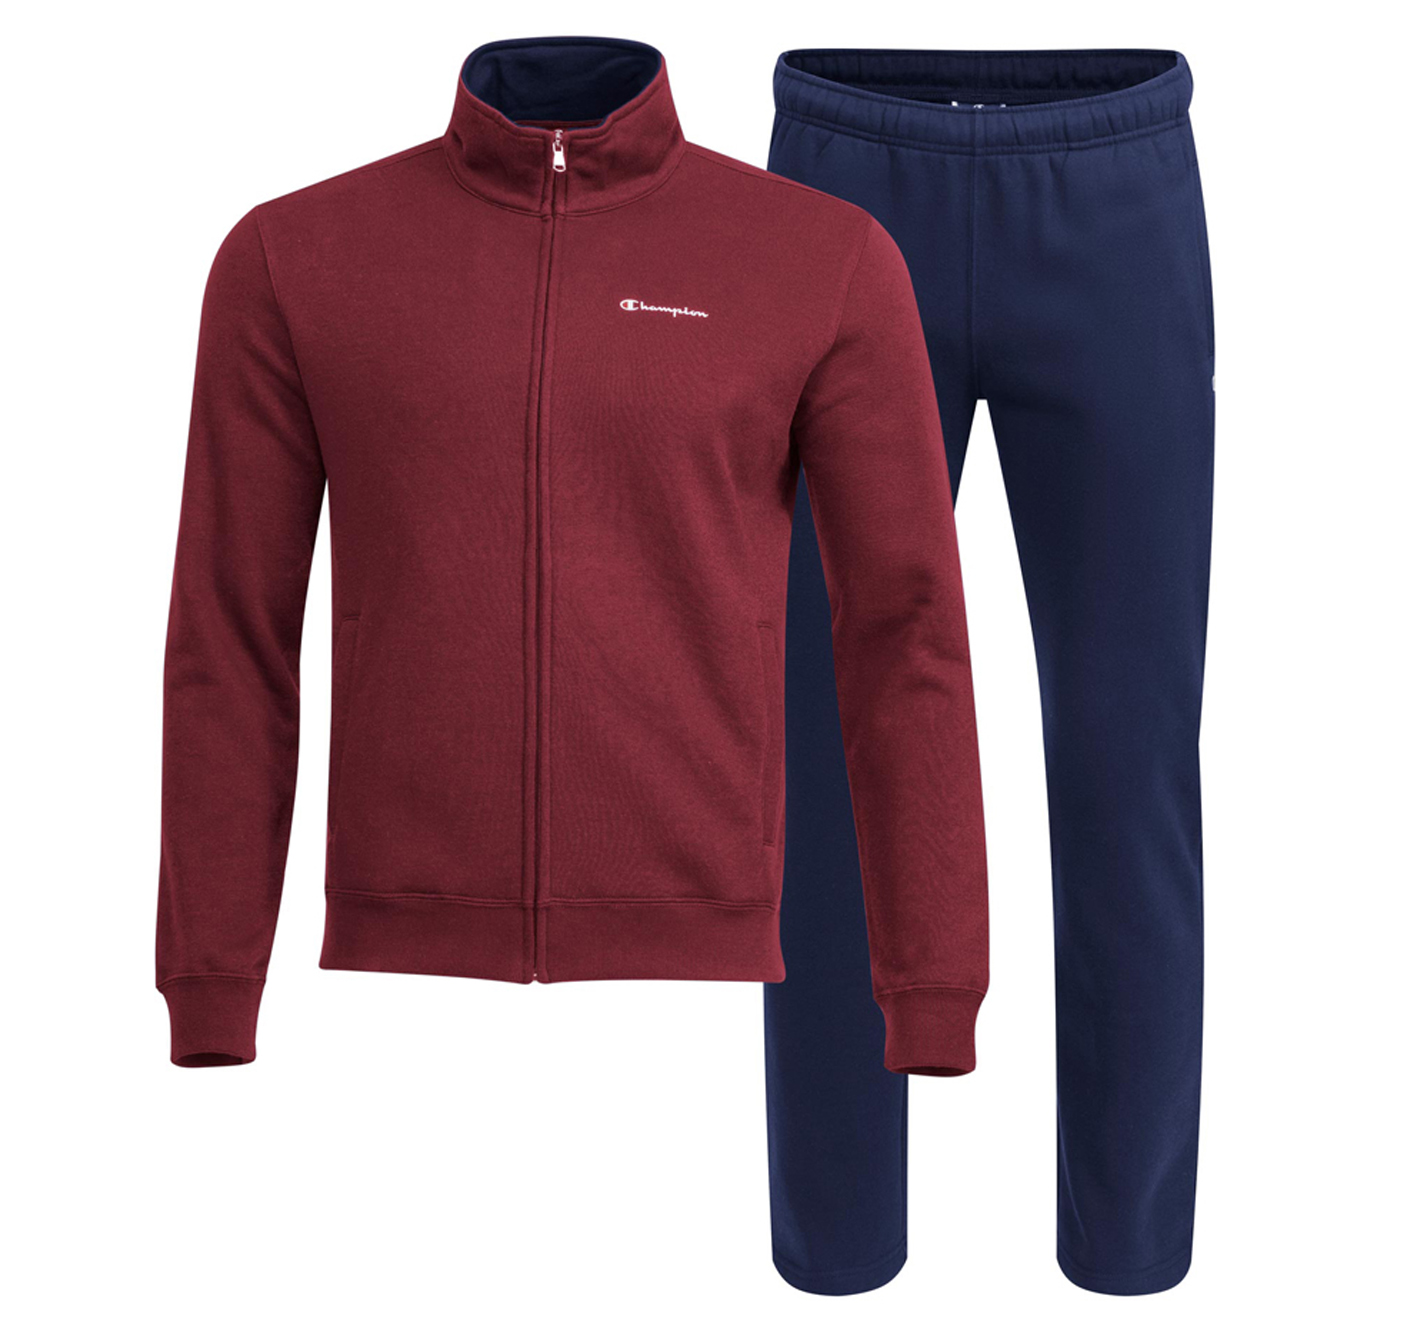 0a2e999bf668 CHAMPION CHAMPION FULL ZIP SUIT S 212159-RS507 - Glami.gr